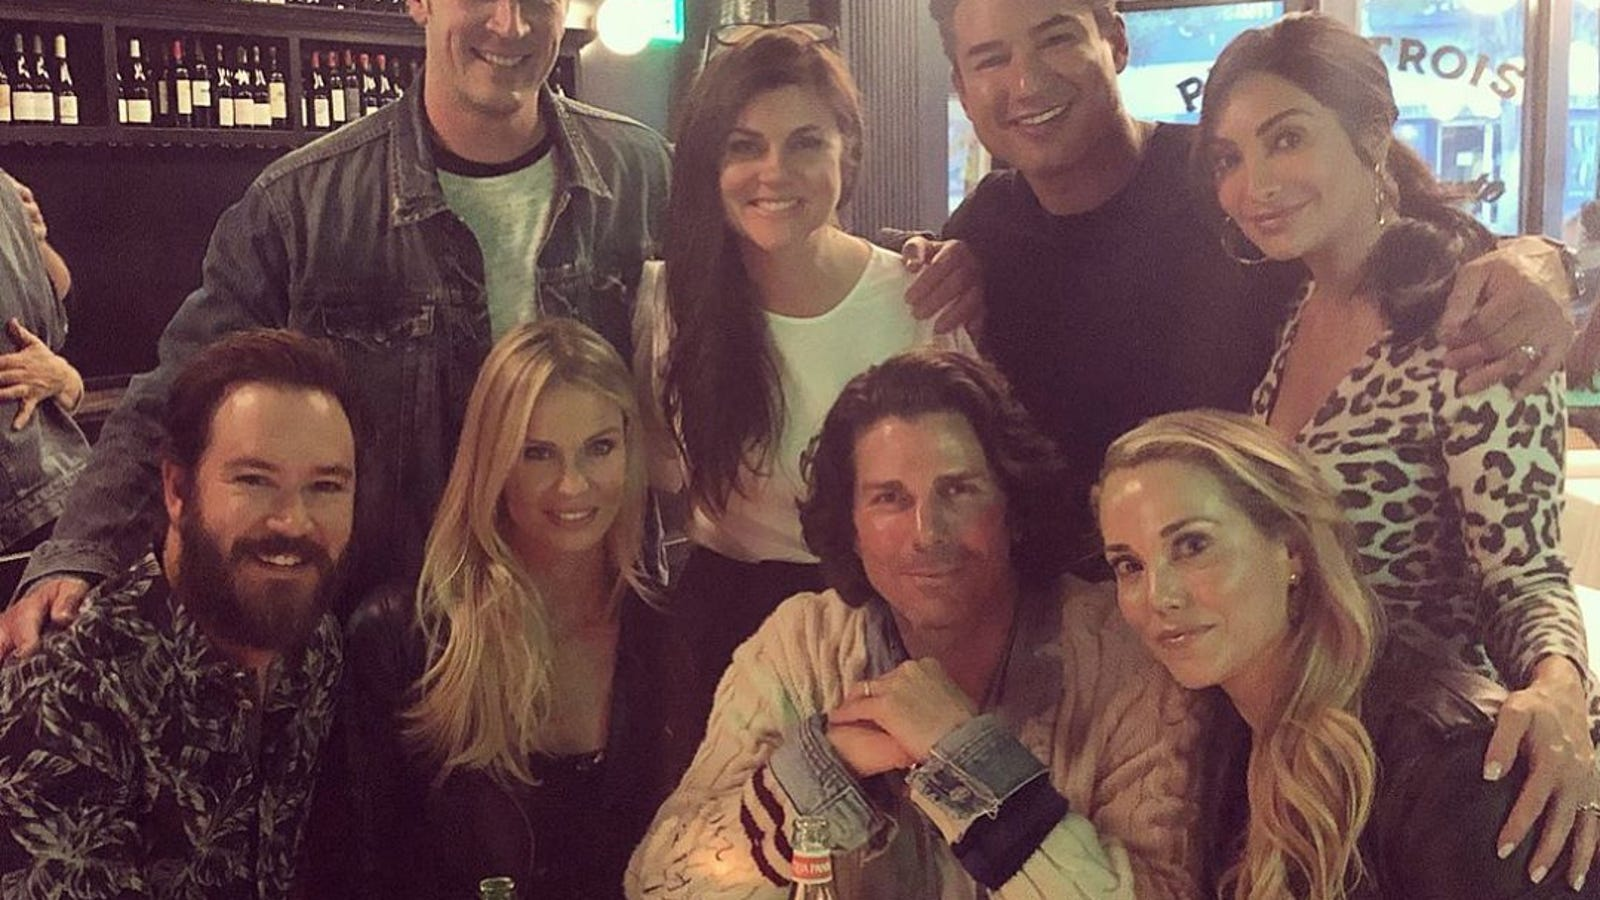 Thirty Years Later, the Cast of Saved By the Bell Is Having a Great Time